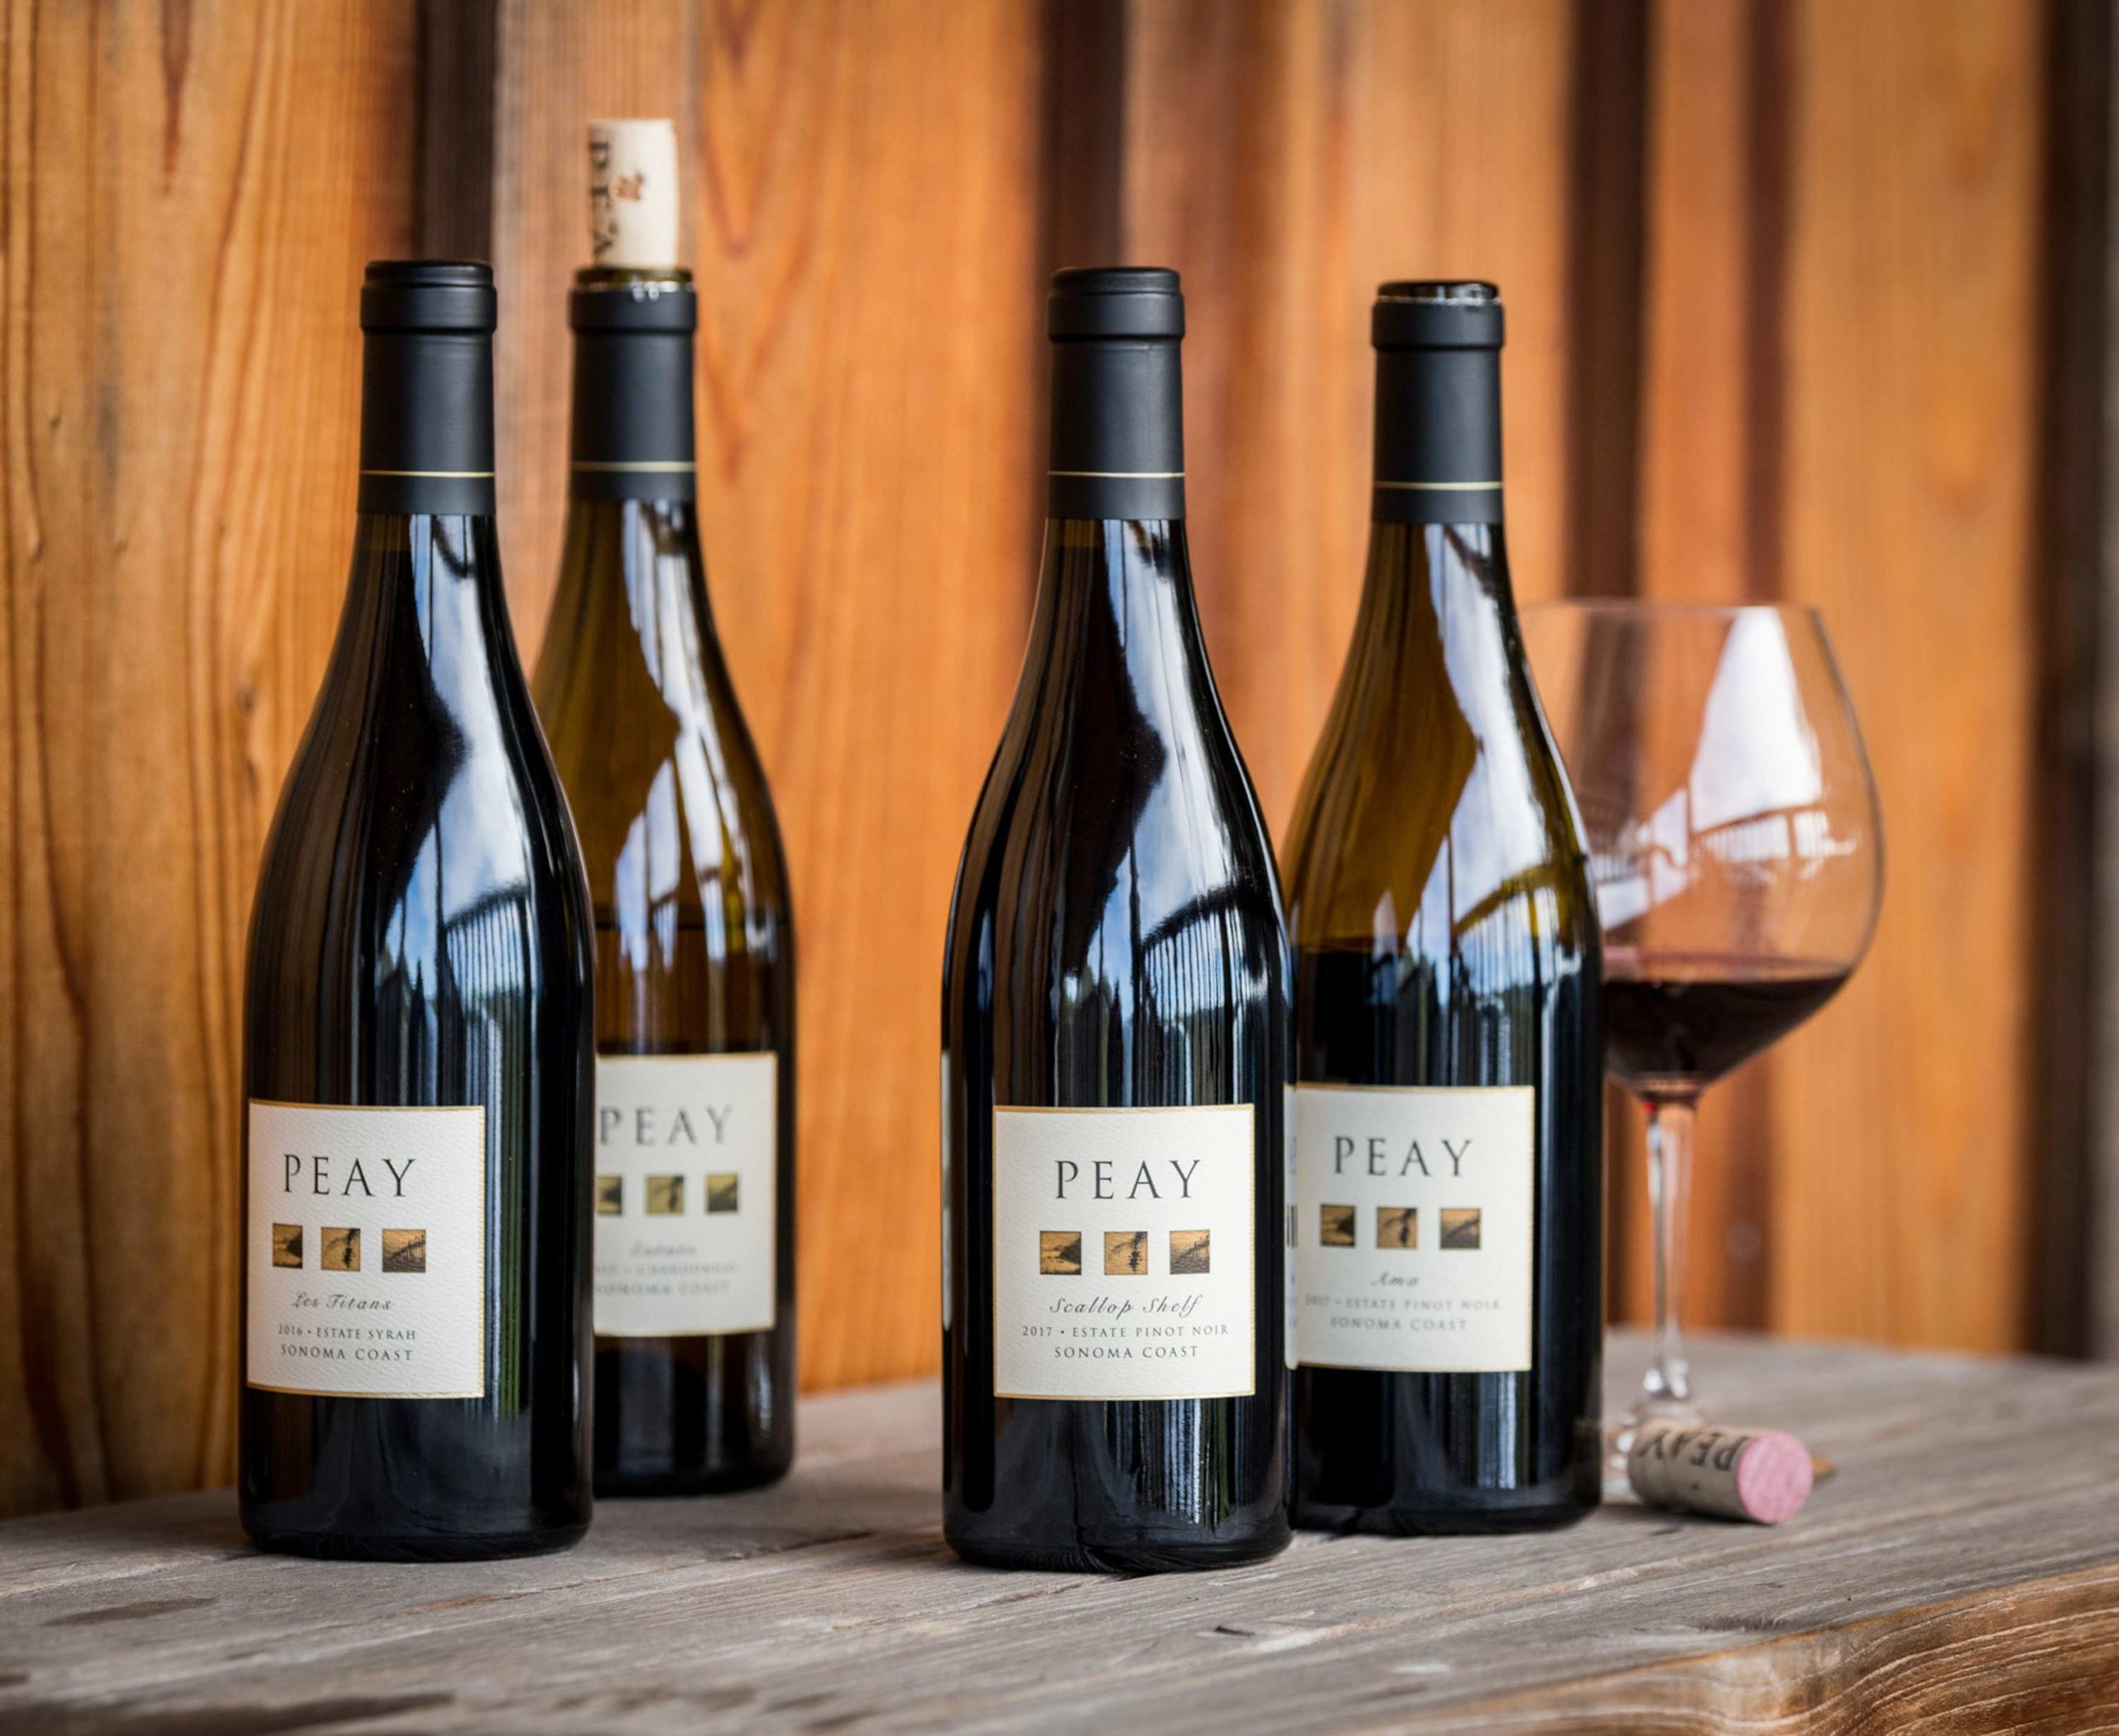 Featured image for Article: 2017 Peay Vineyards Les Titans Estate Syrah, Sonoma Coast